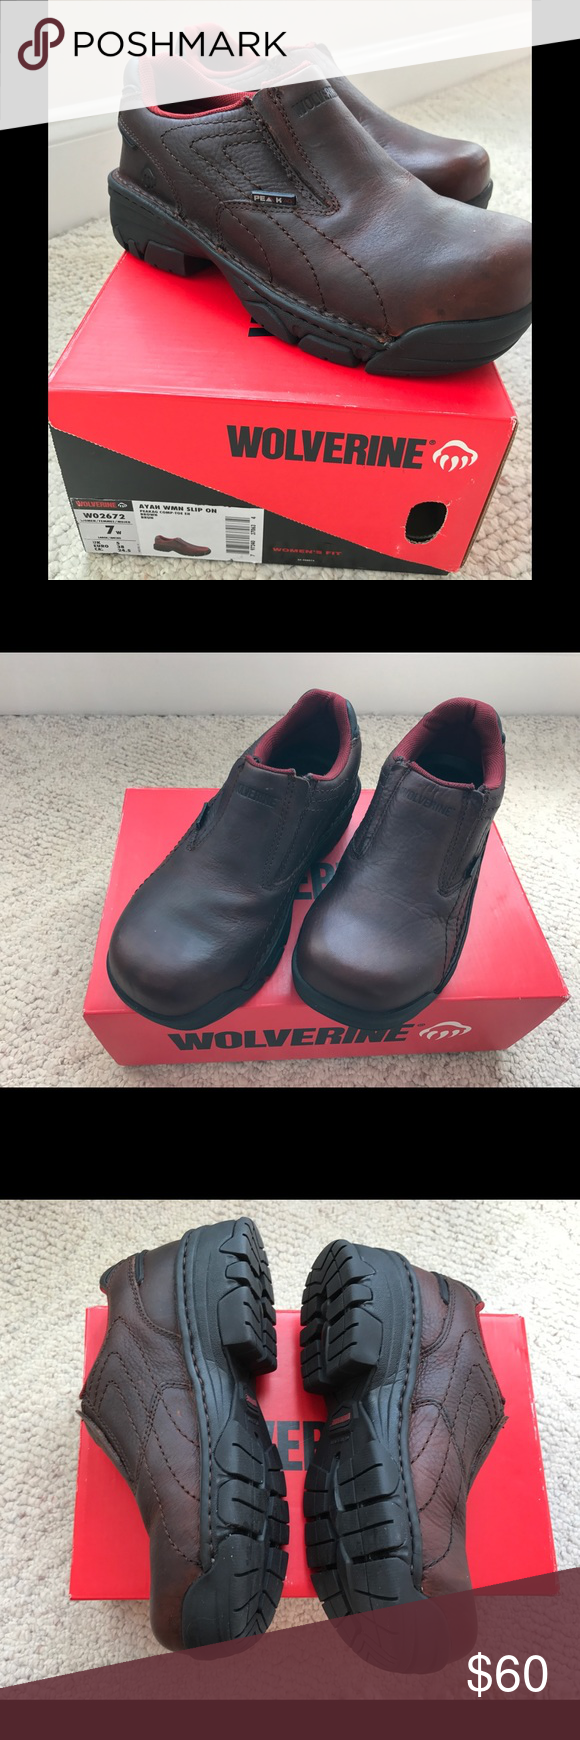 Wolverine leather steel toe Ayah boots brand new Wolverine leather steel toe Ayah WMH Slip On Peakag comp-toe brown boots brand new. Very comfortable for working boots. Make me an offer! Wolverine Shoes Ankle Boots & Booties